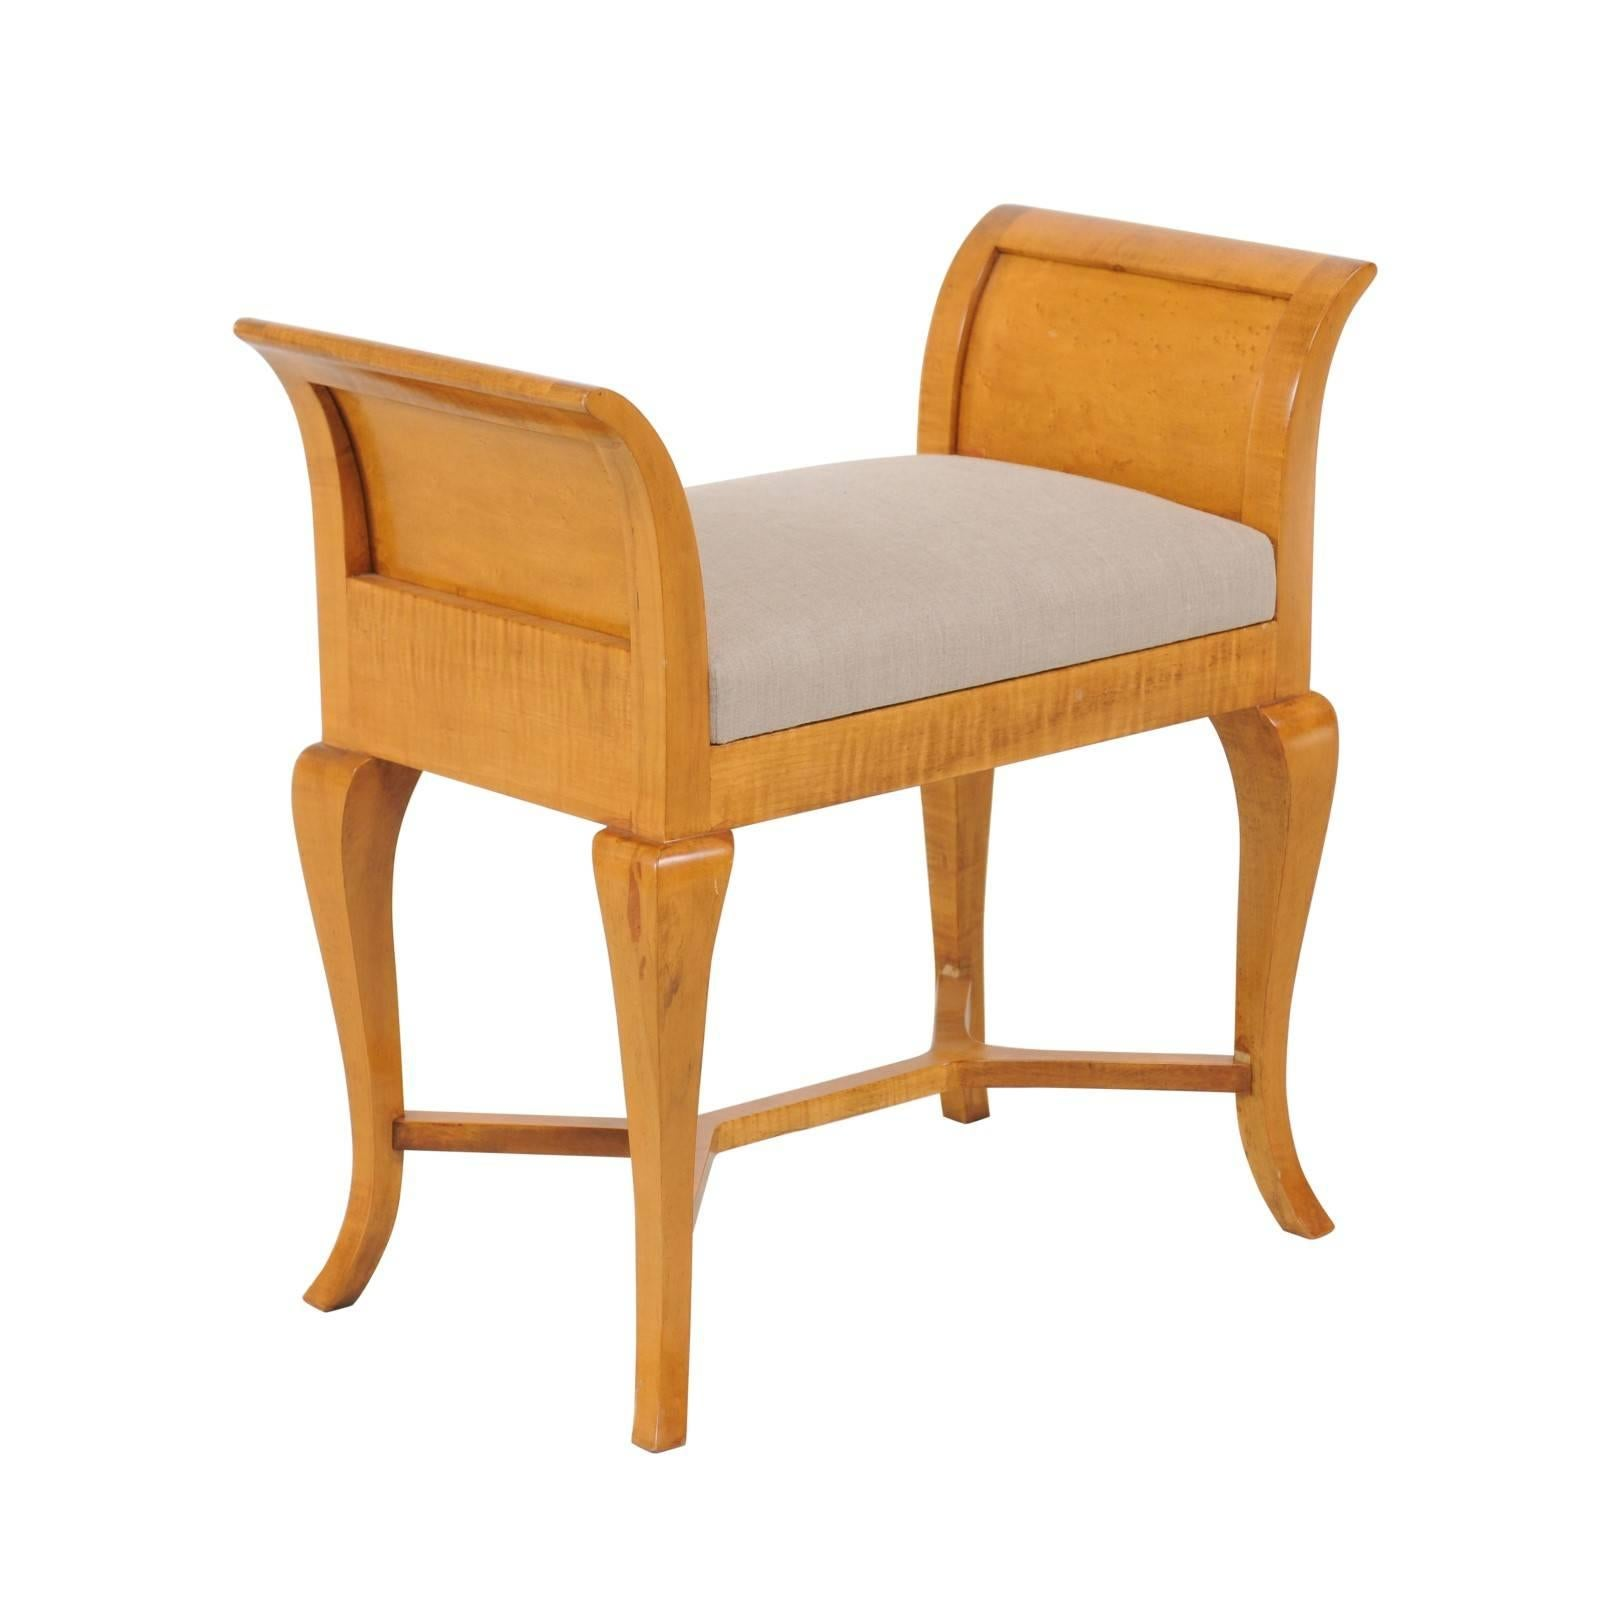 Petite Austrian Biedermeier Maple Bench with Out-Scrolled Arms from the 1840s